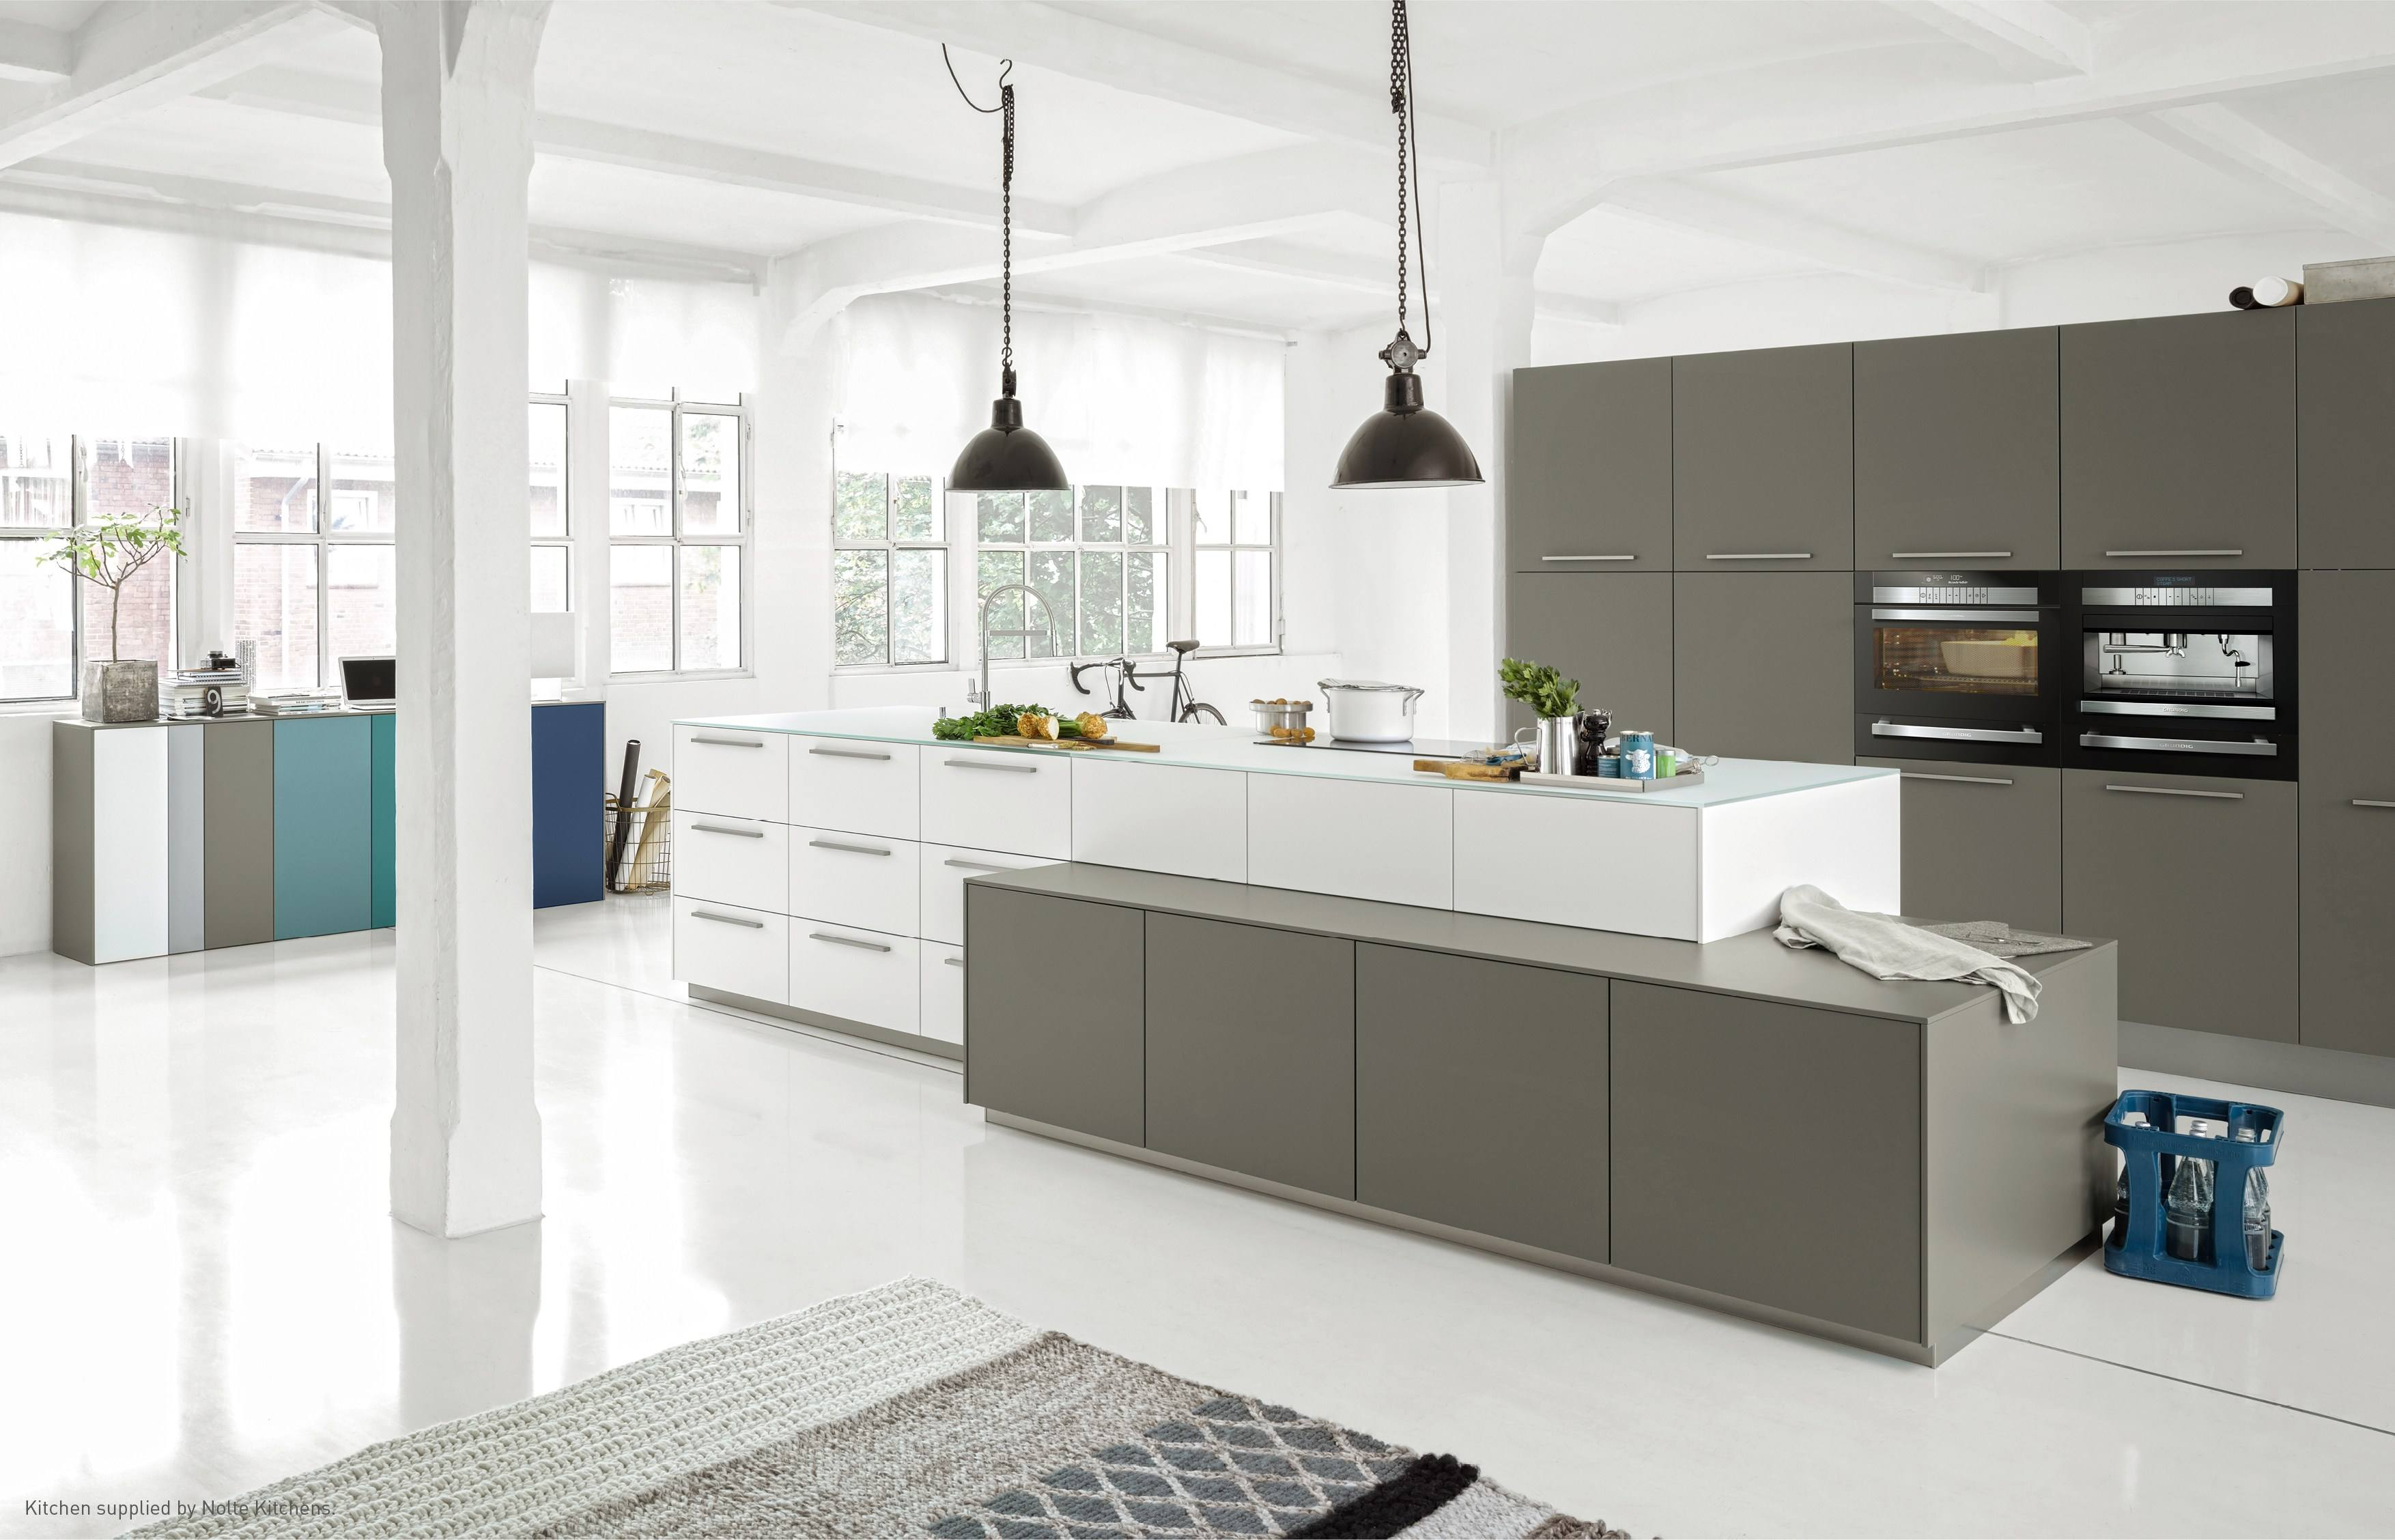 How To Find A Home For Appliances Kitchen Magazine